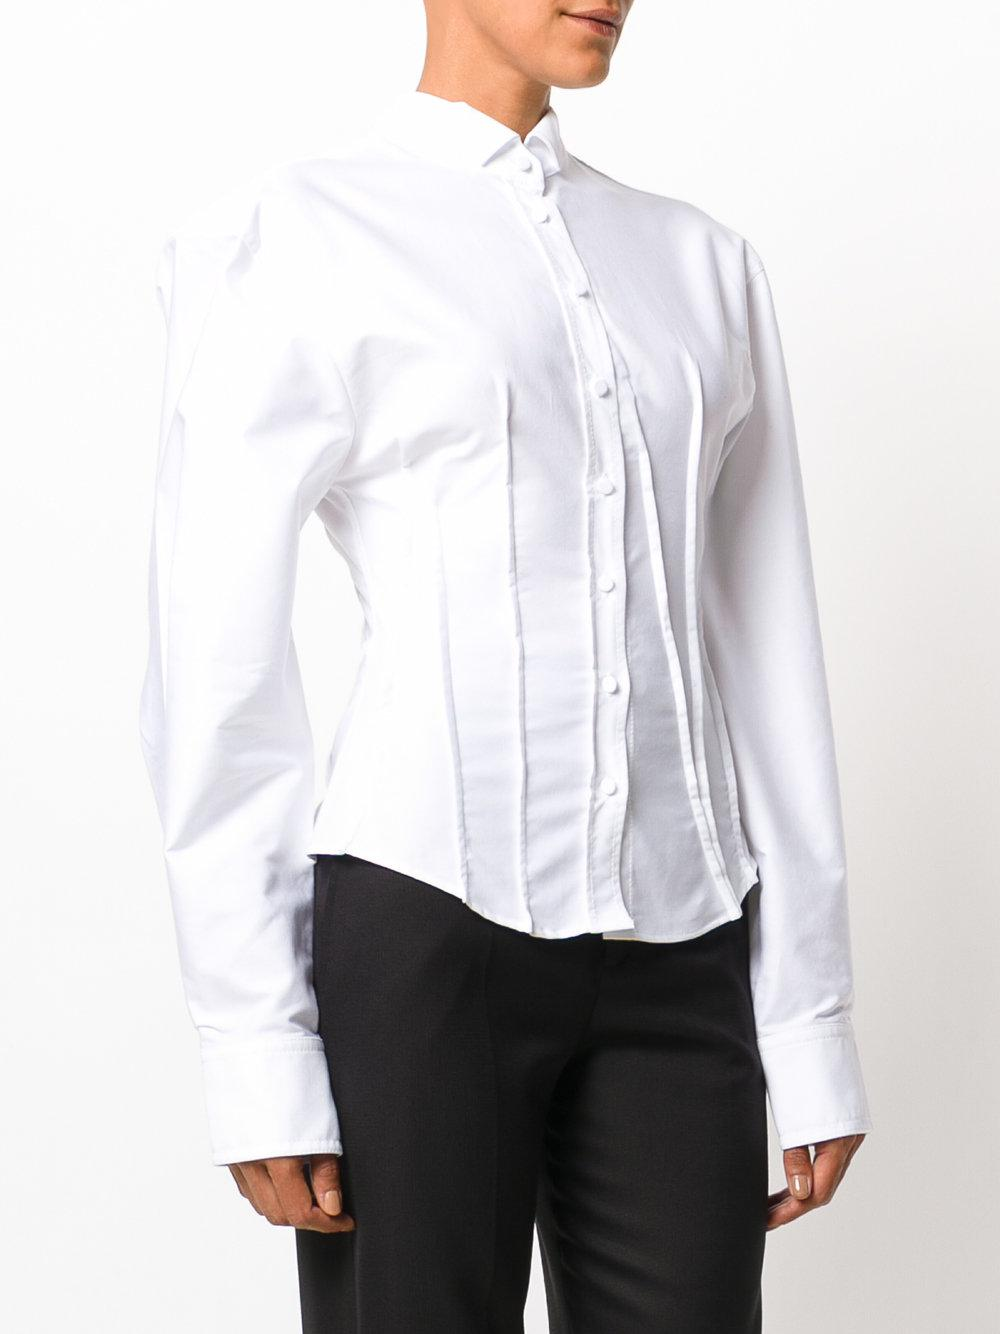 Lyst jacquemus extra slim fitted shirt in white for Best extra slim fit dress shirts